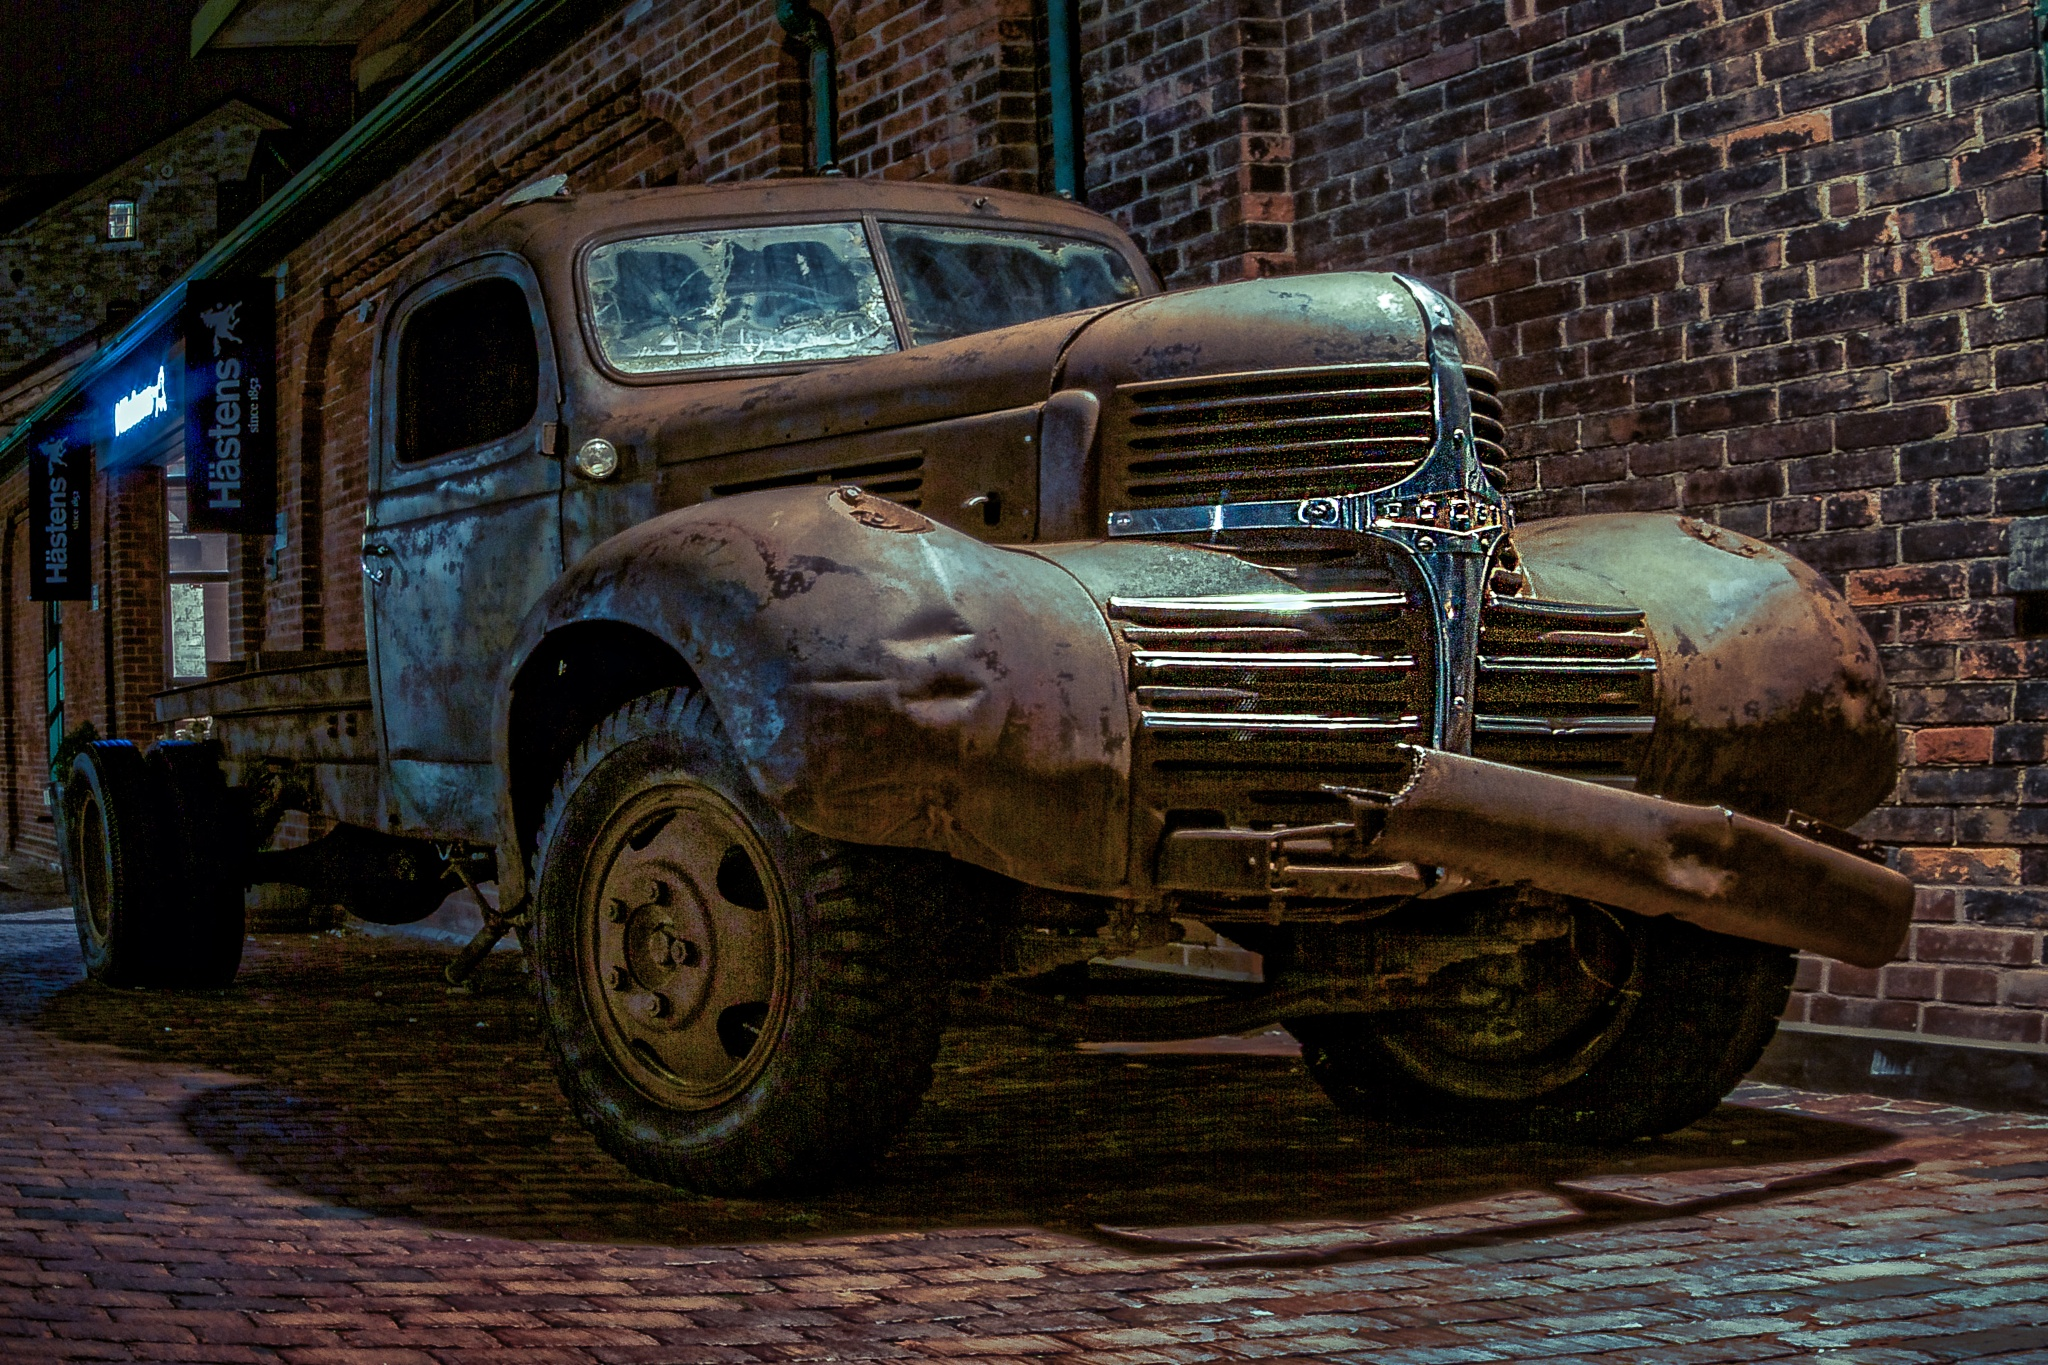 Old Dodge Truck by Images by Marty